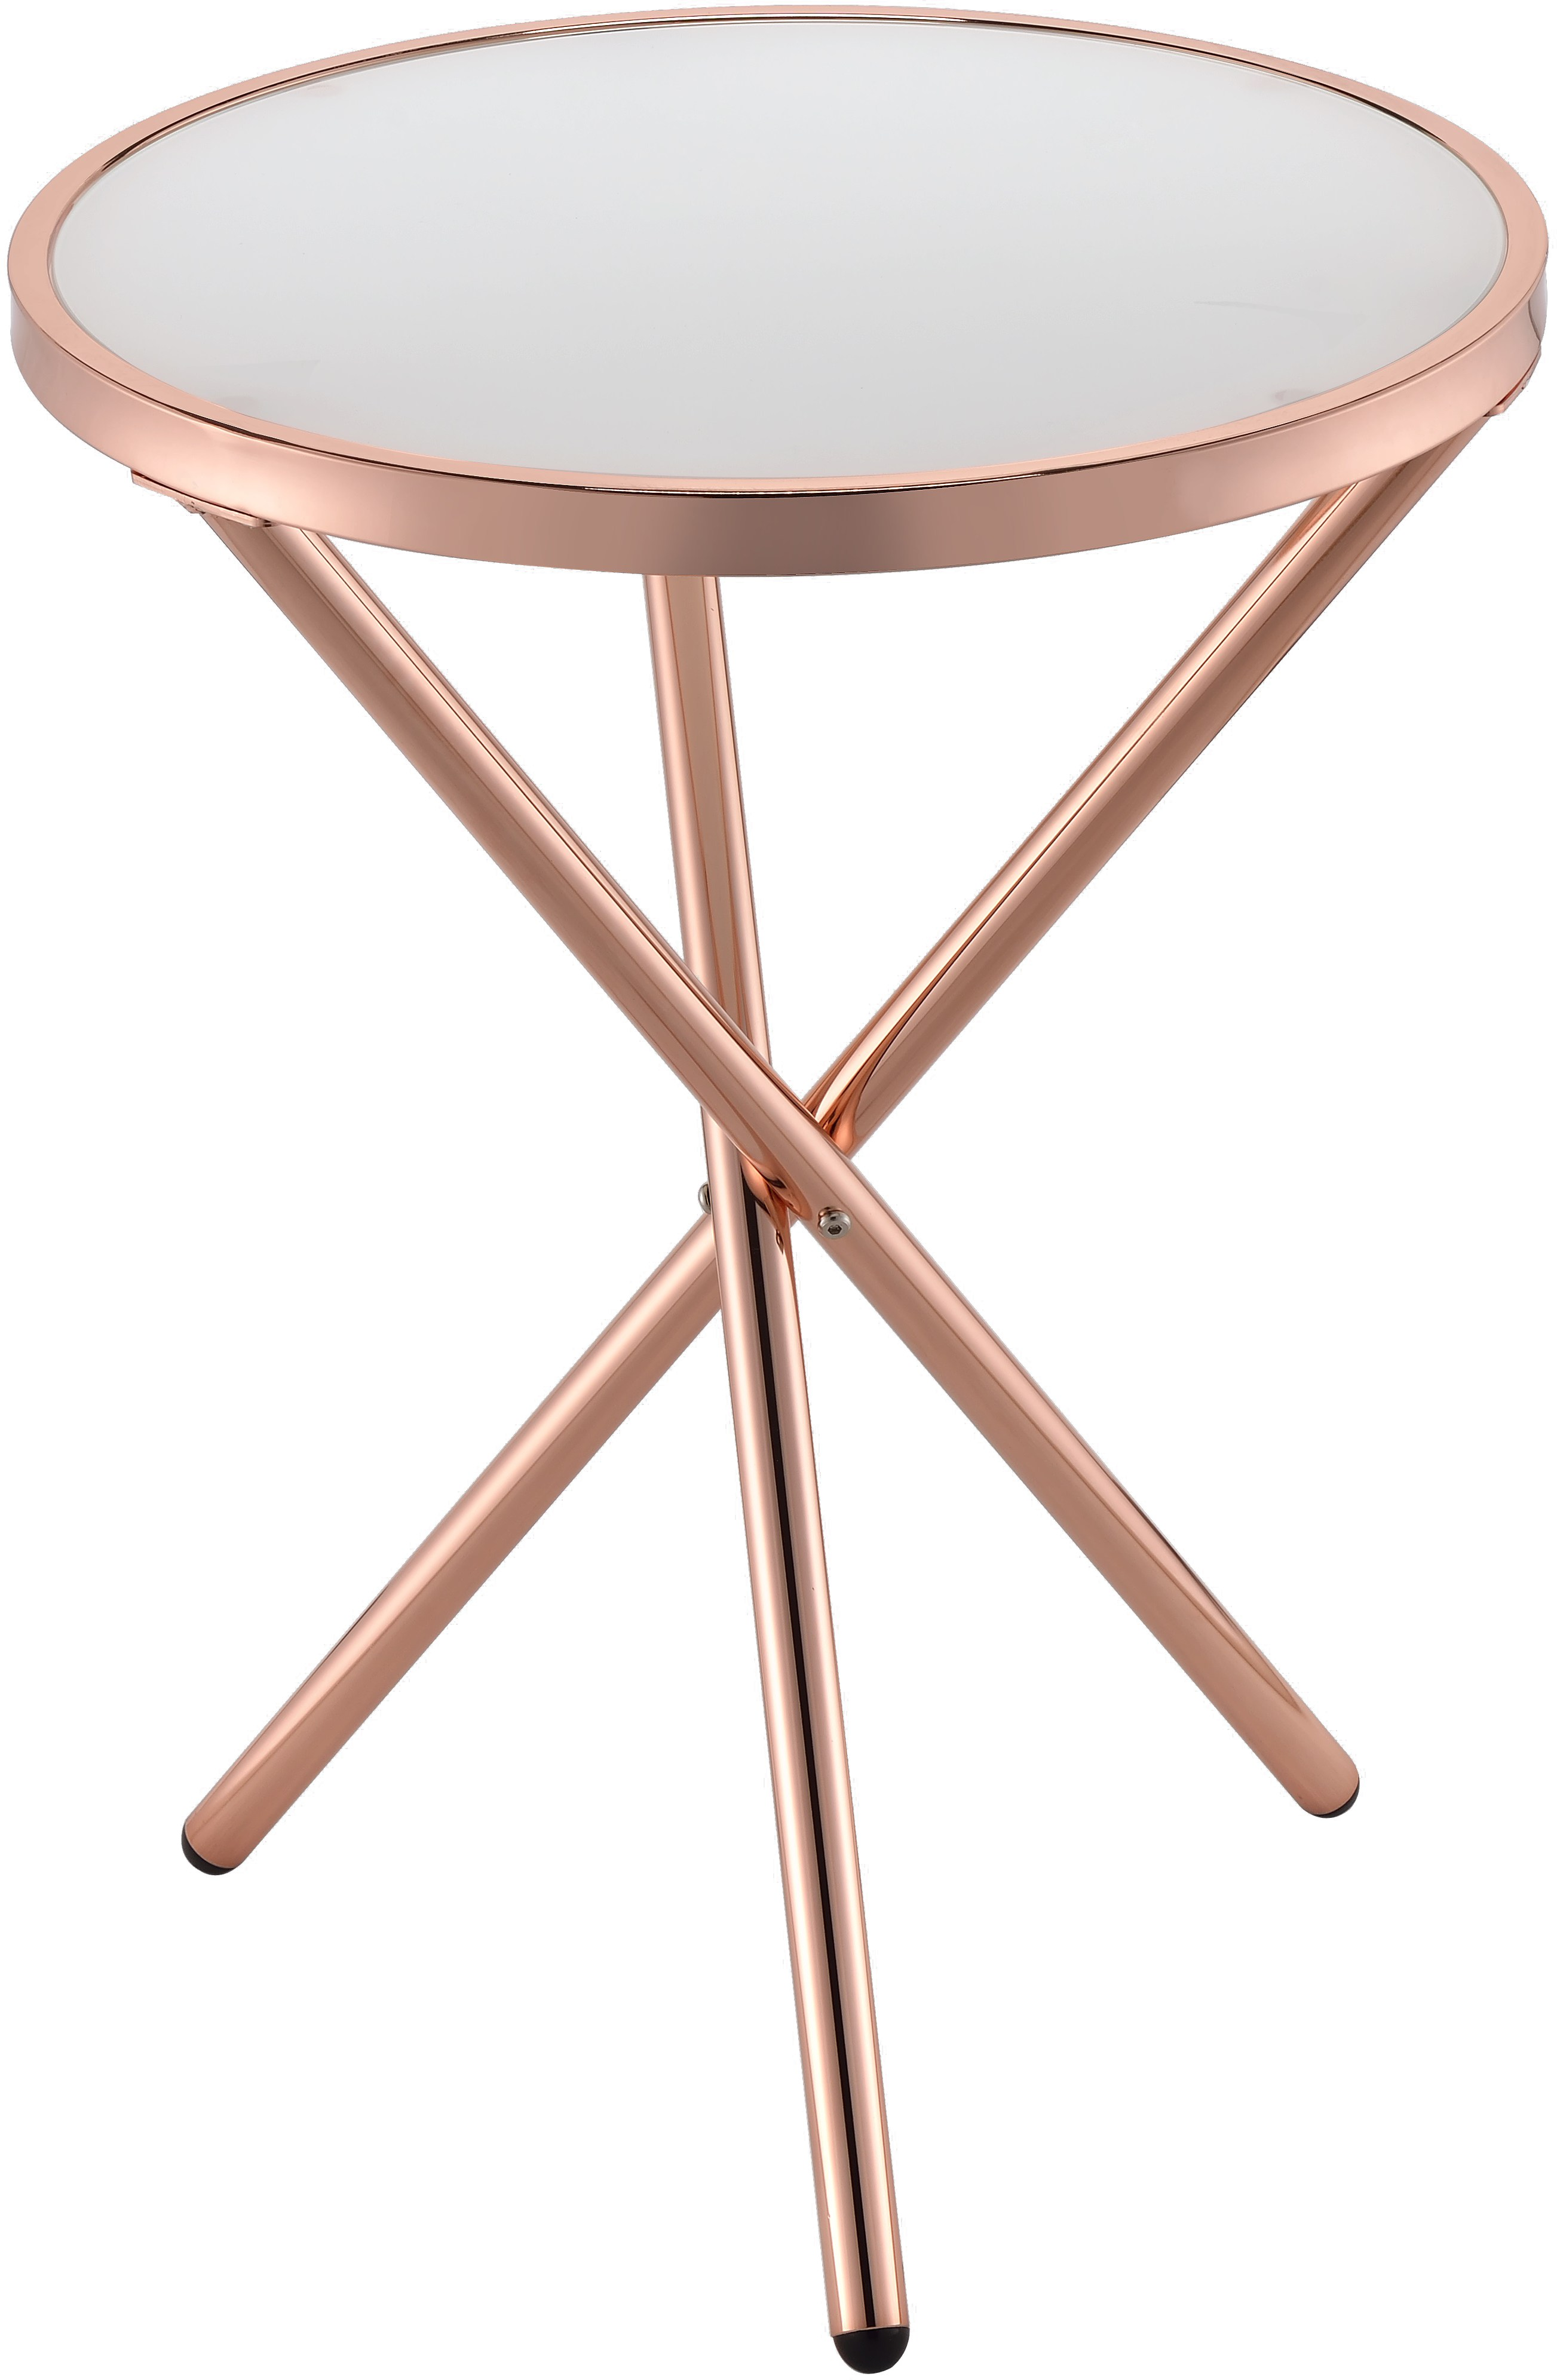 lajita rose gold accent table tables rosegold mid century modern cocktail pottery barn trunk end drop leaf folding vitra chair replica drum lamp shades concrete top outdoor gray